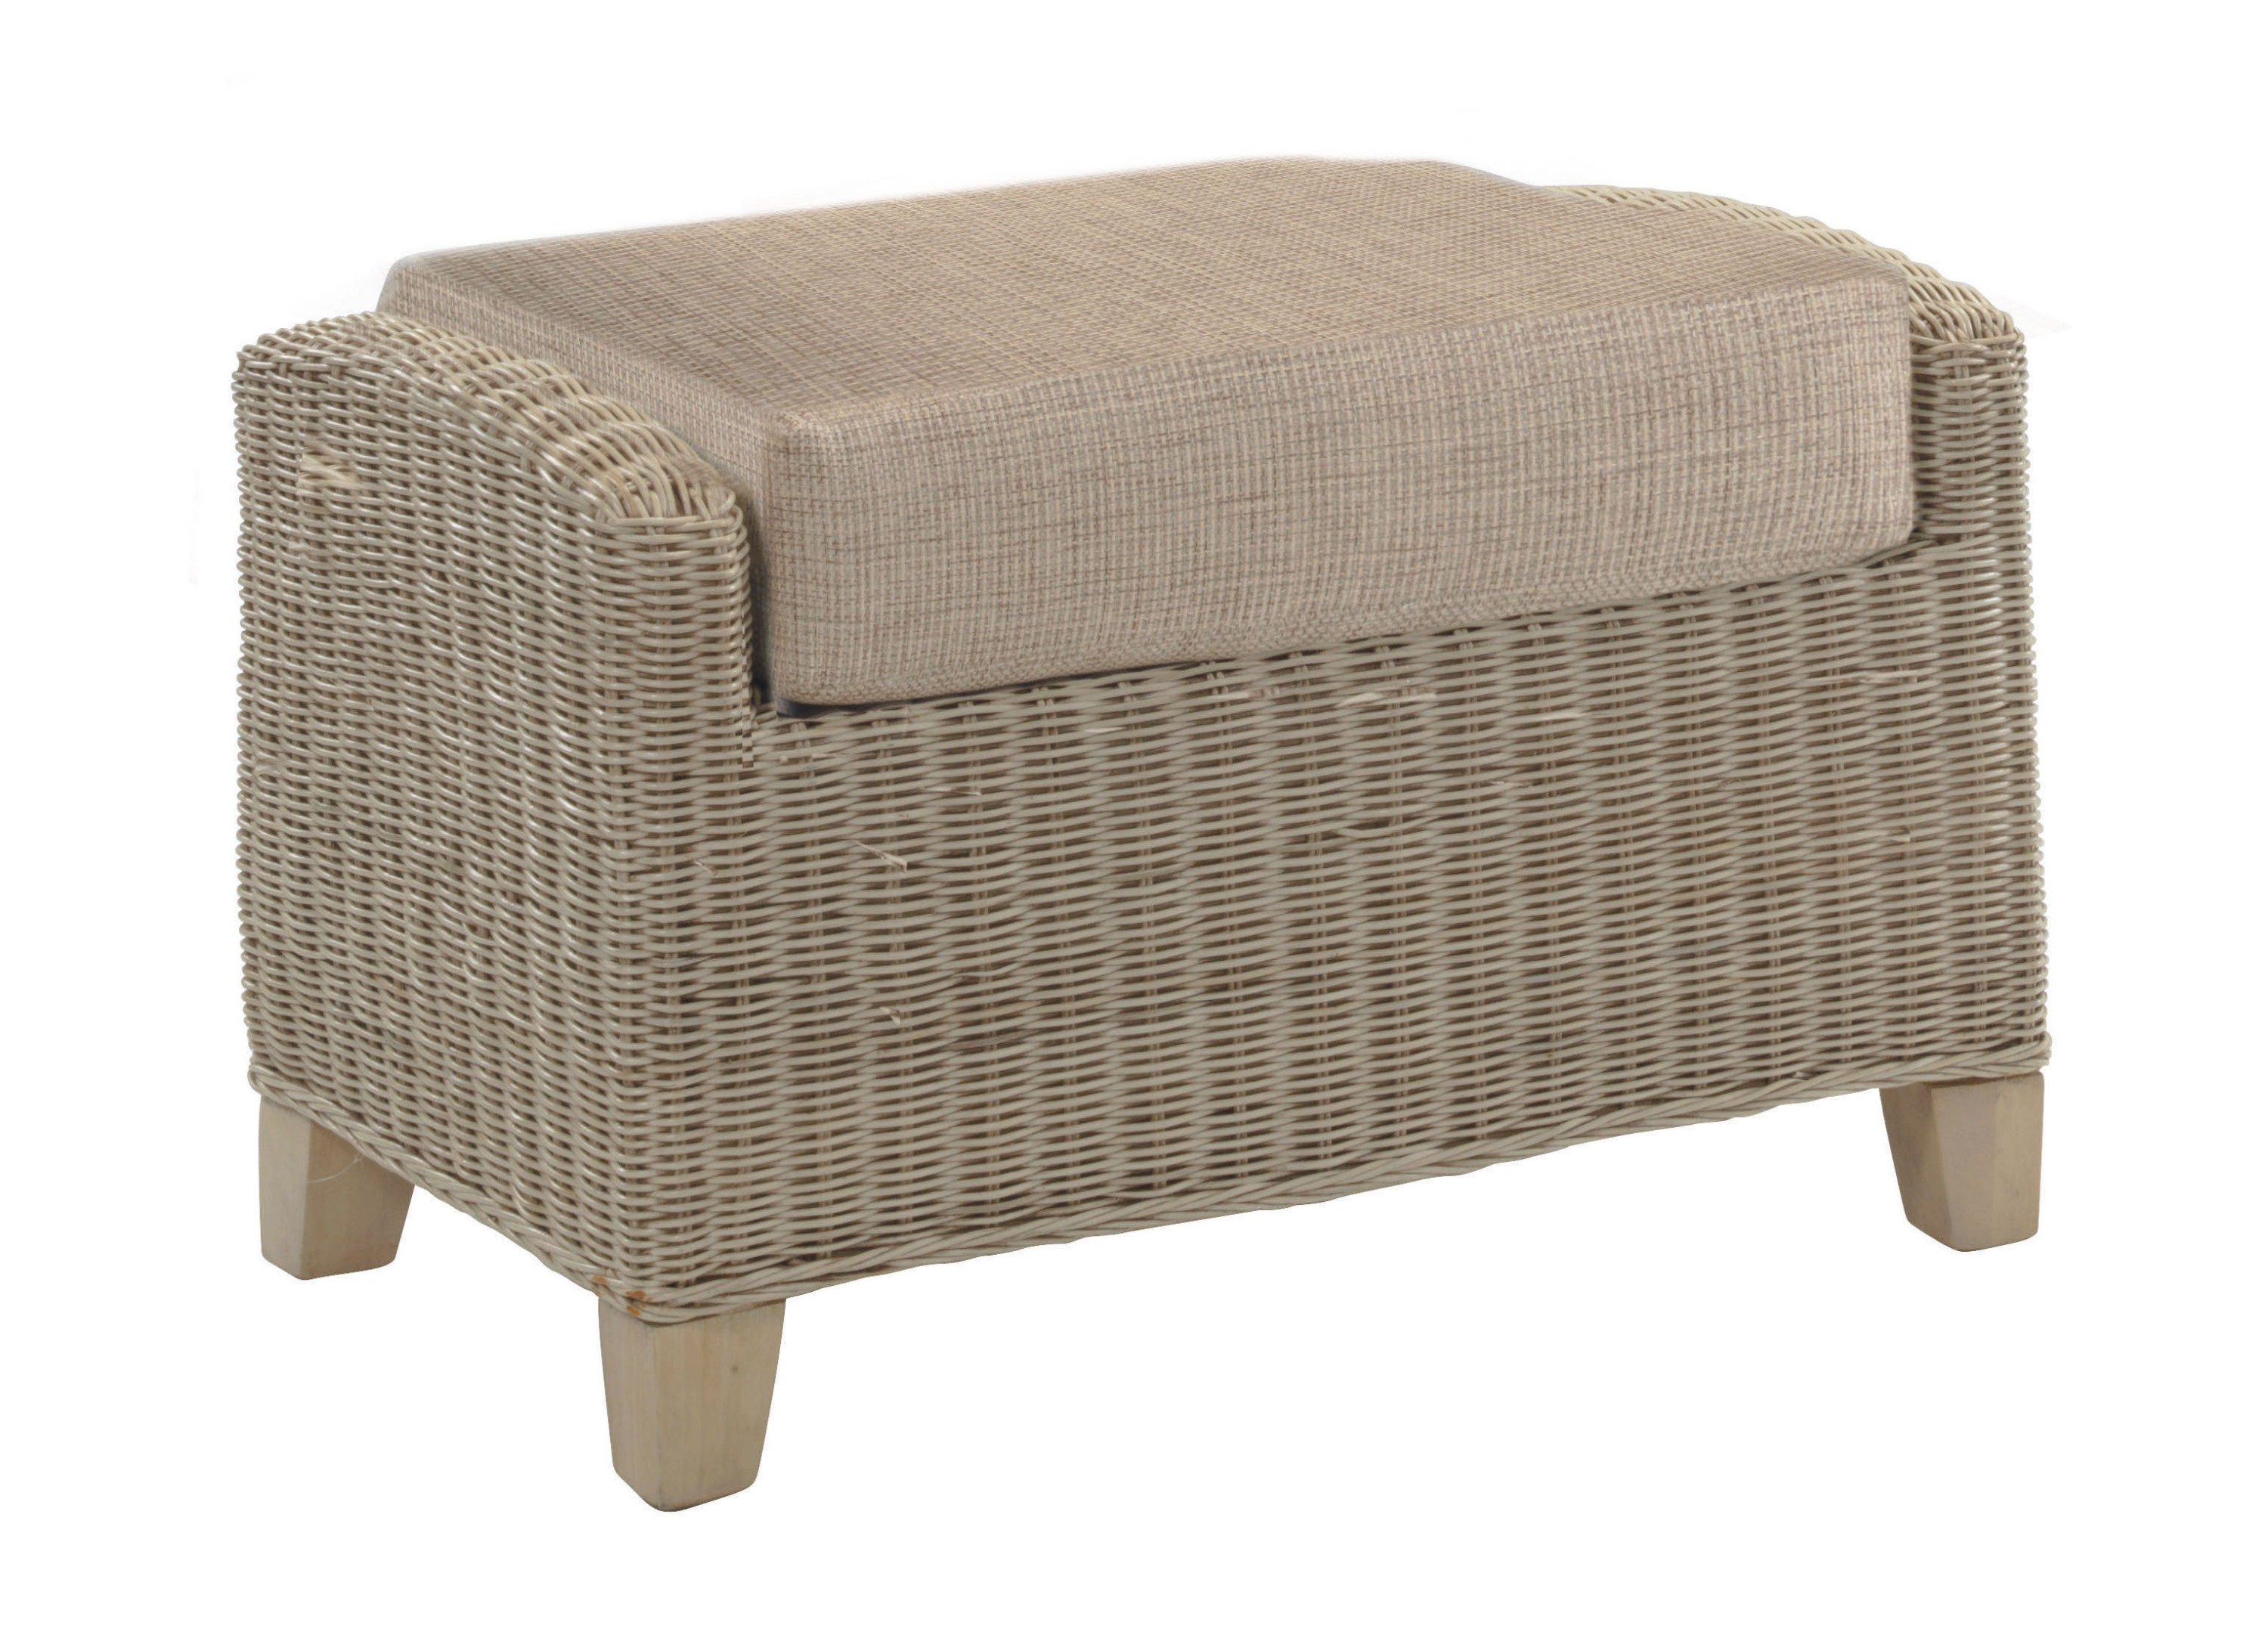 Desser Corsica Footstool with storage sold at Highgate Furniture Southend On Sea